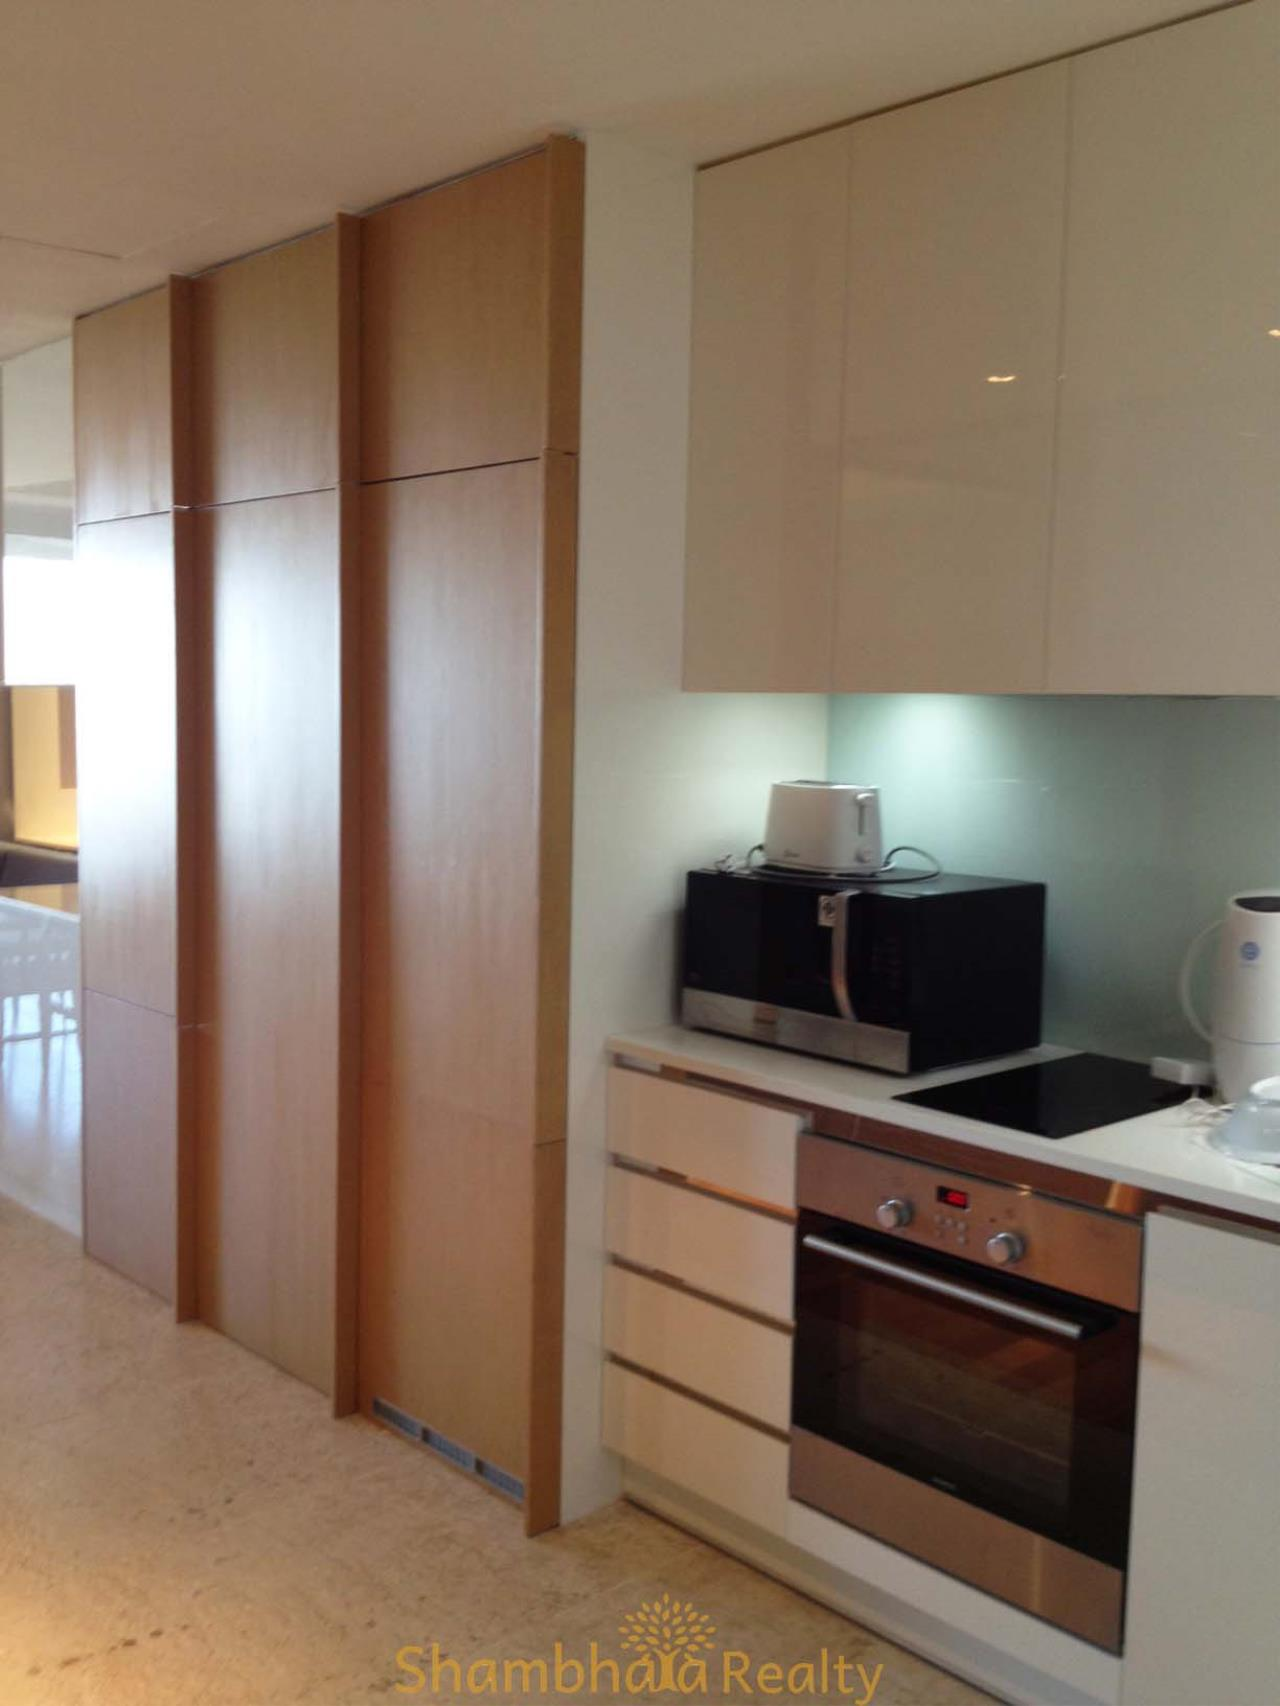 Shambhala Realty Agency's The Pano Condominium for Sale/Rent in Rama 3 4